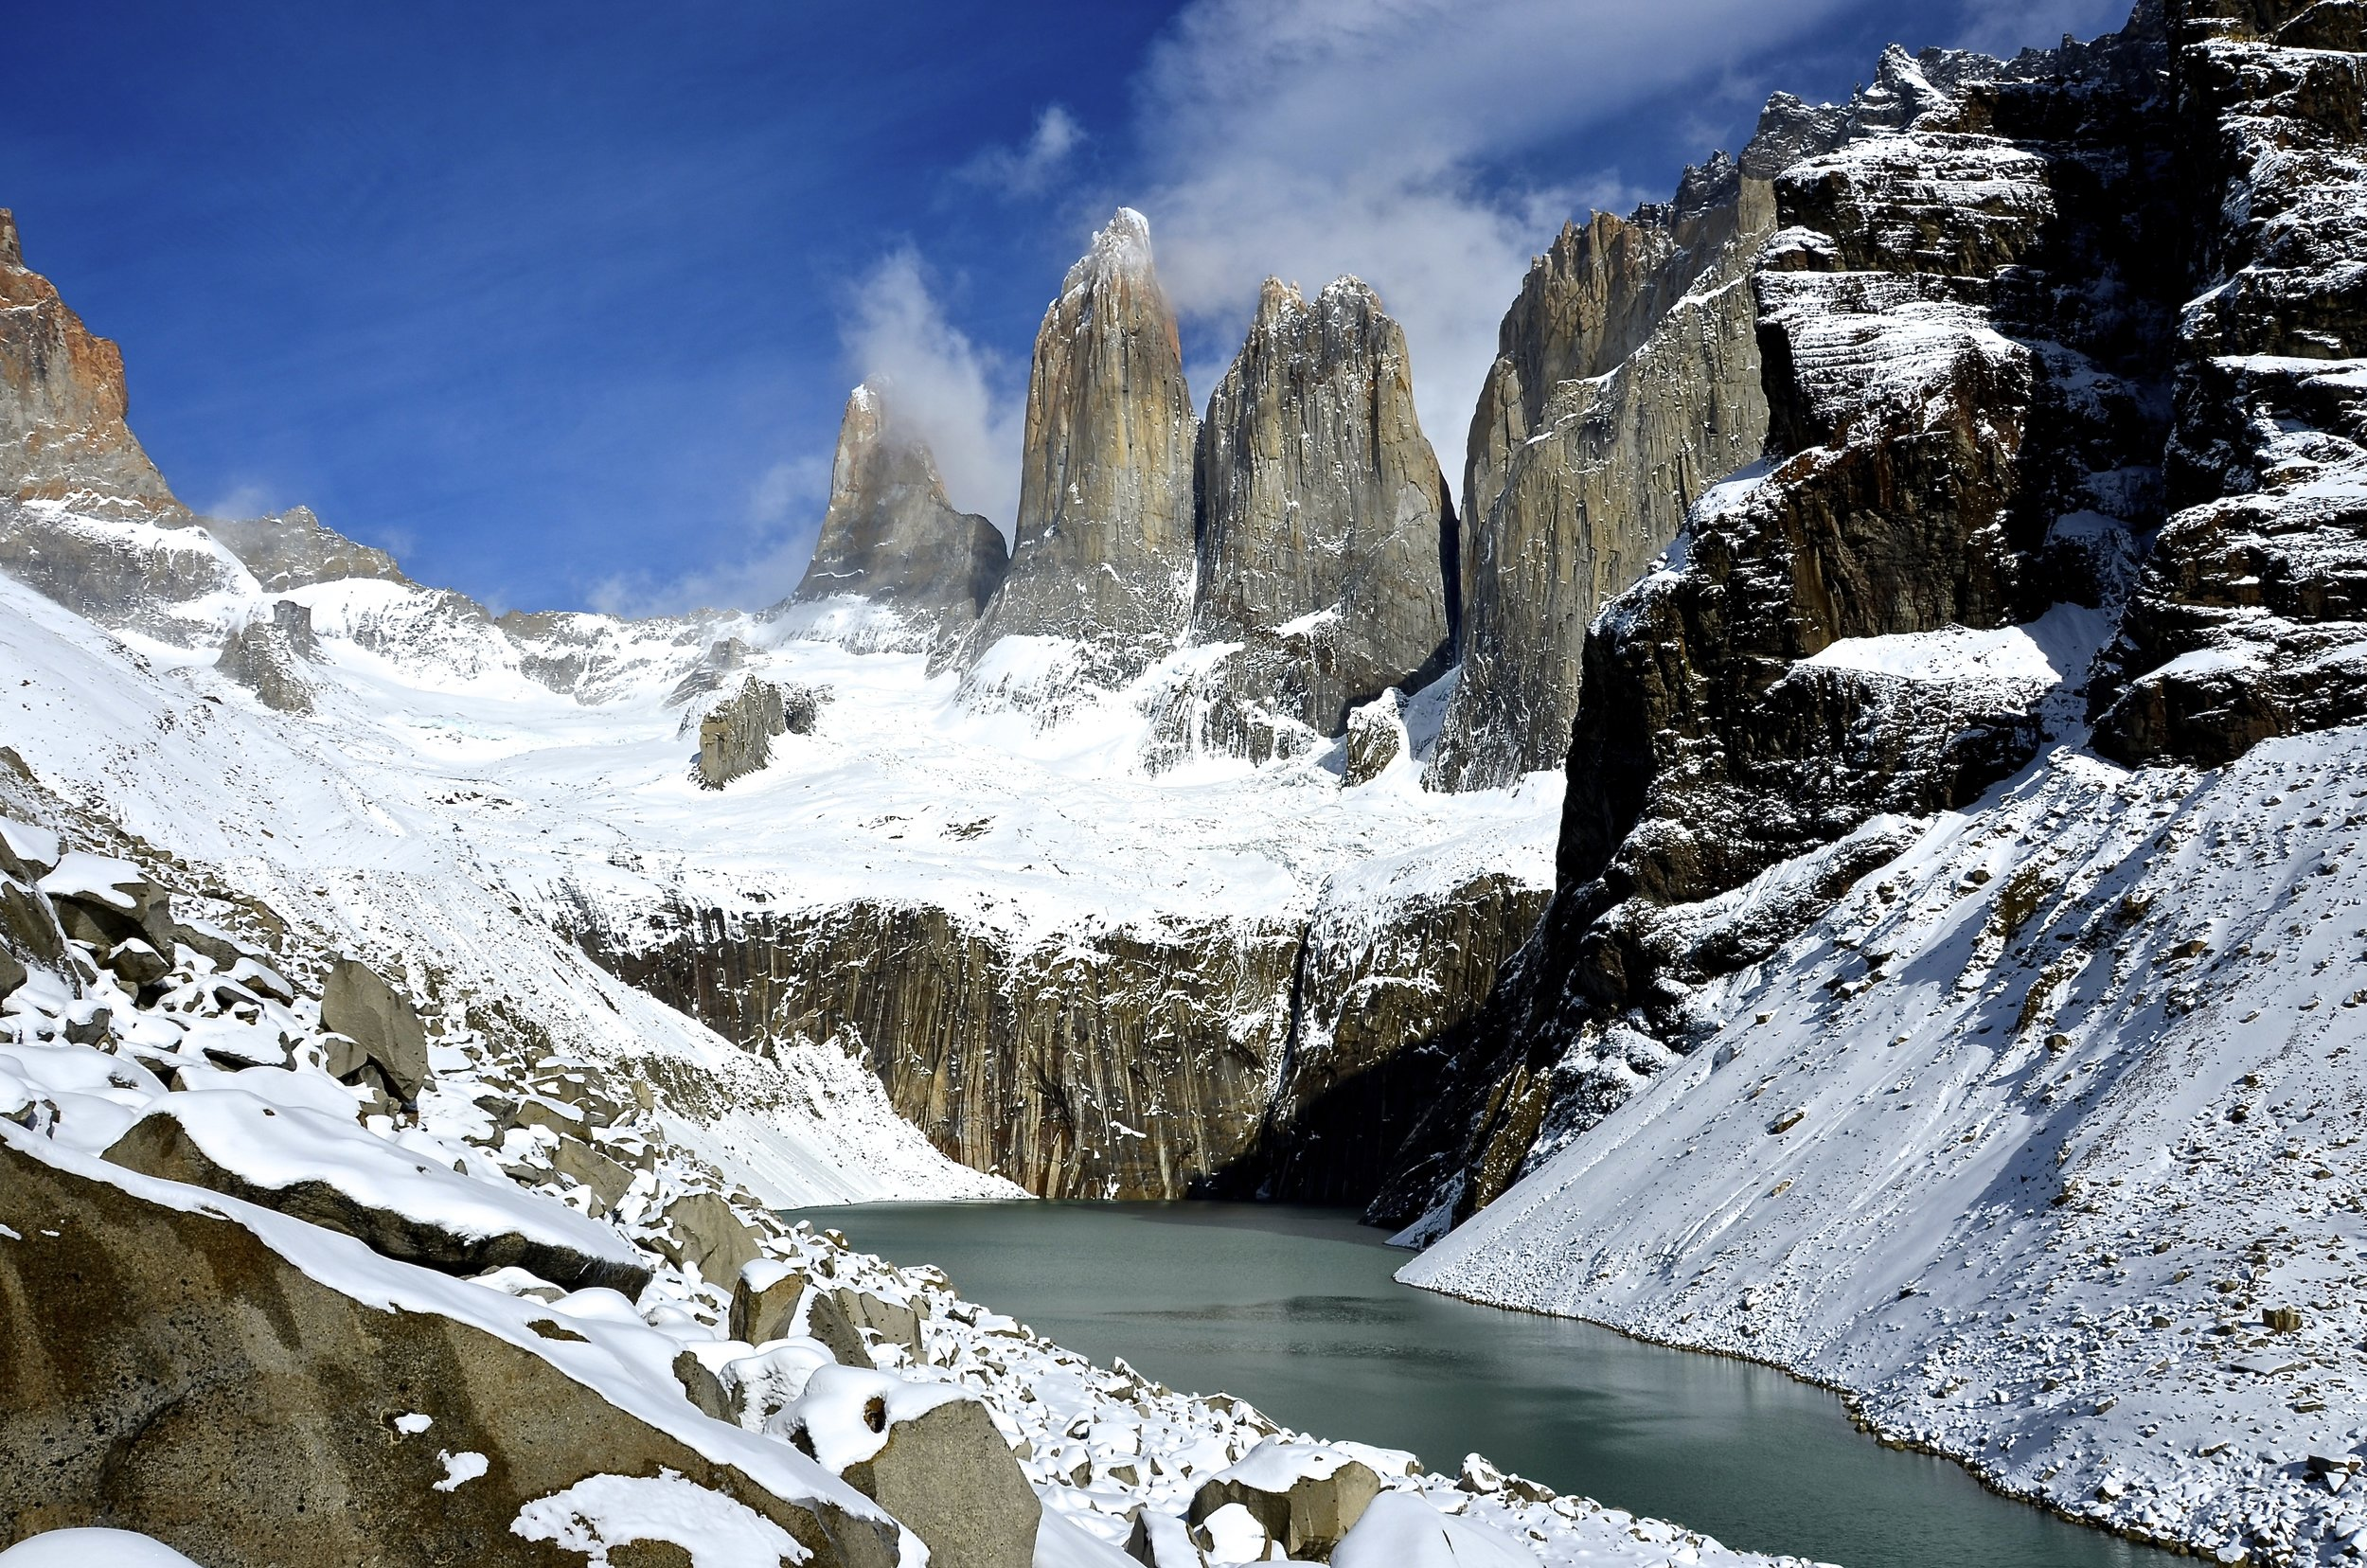 The famous towers which Torres del Paine National Park is named after.